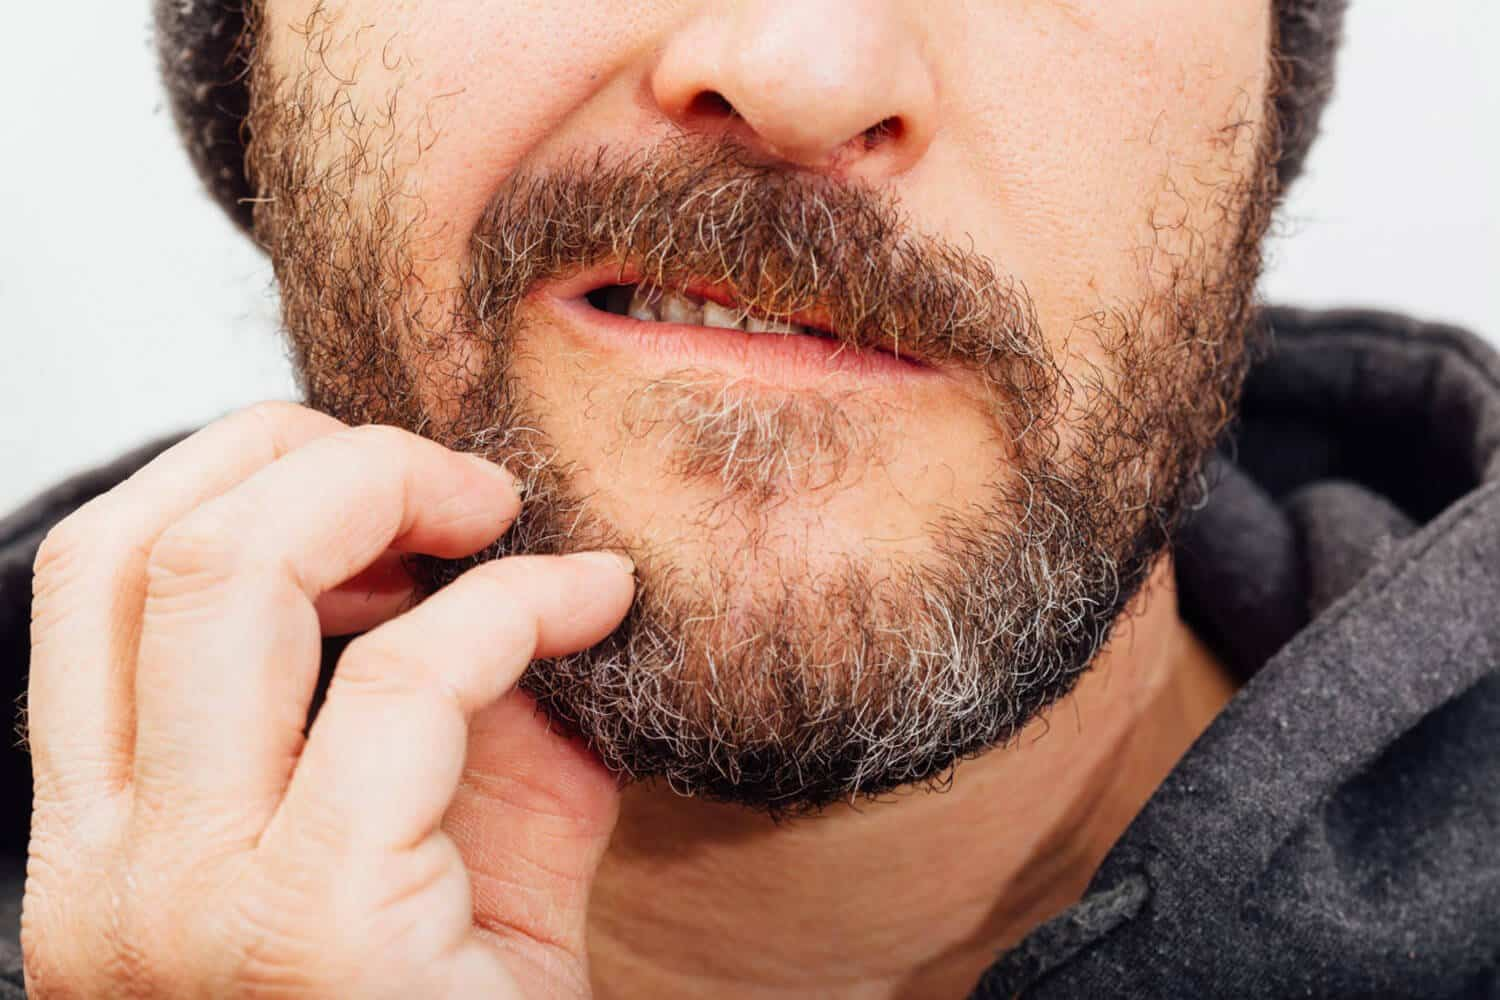 Neckbeard To Beard: Look Amazing With These 5 Simple Steps